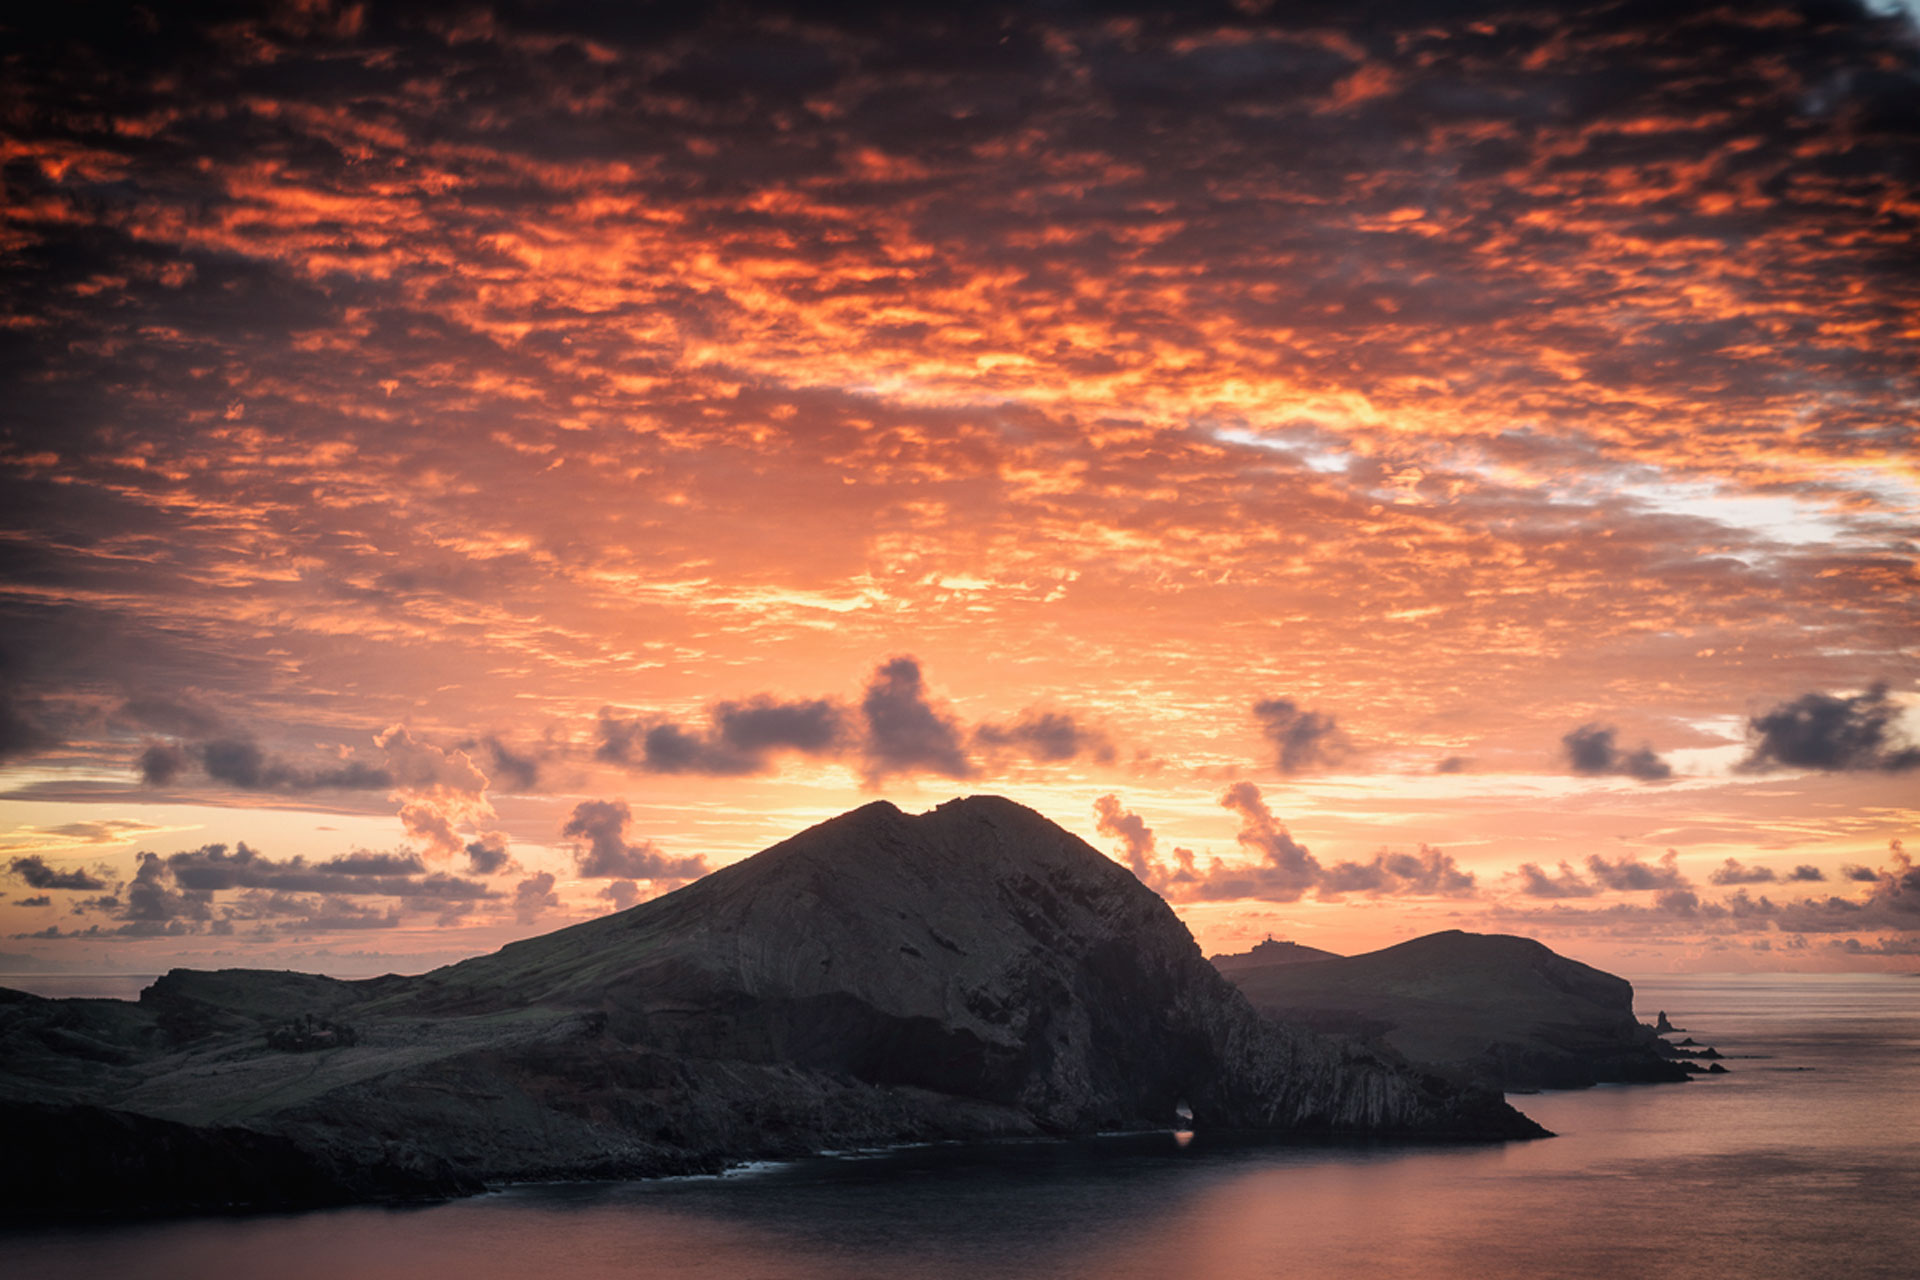 Red planet sky, sunrise, ocean and mountains